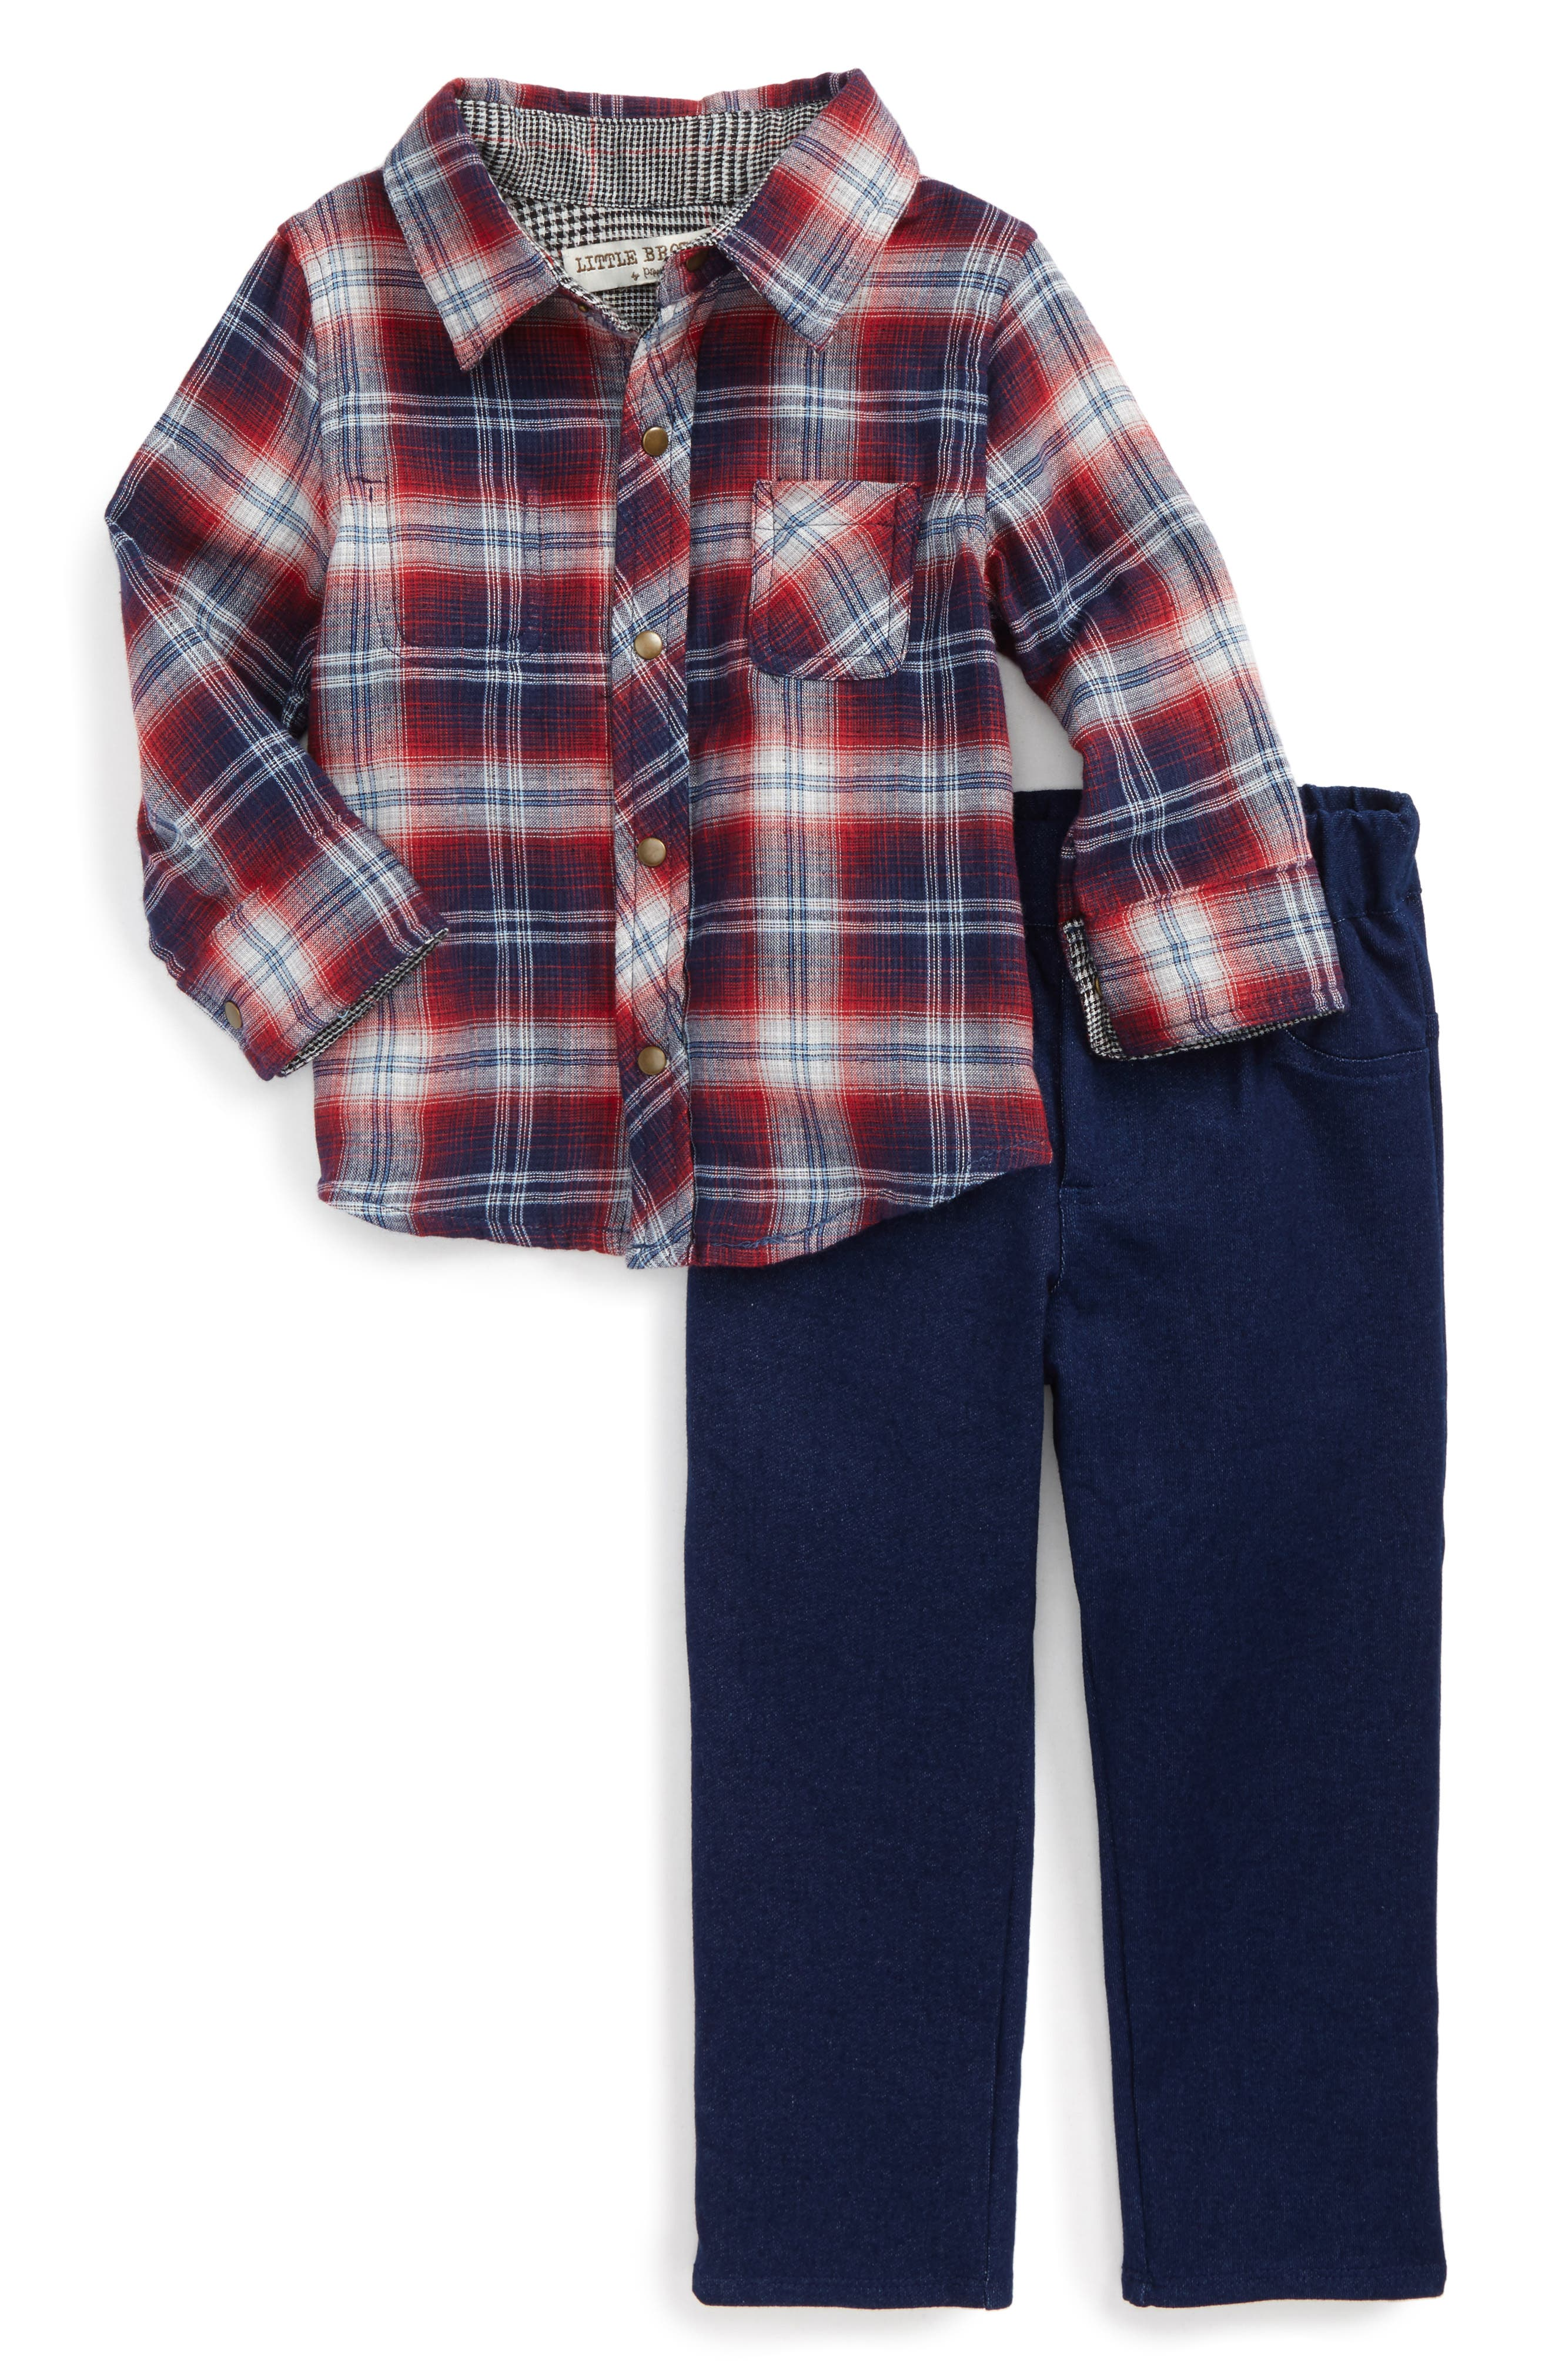 Little Brother by Pippa & Julie Plaid Top & Denim Pants (Toddler Boys)